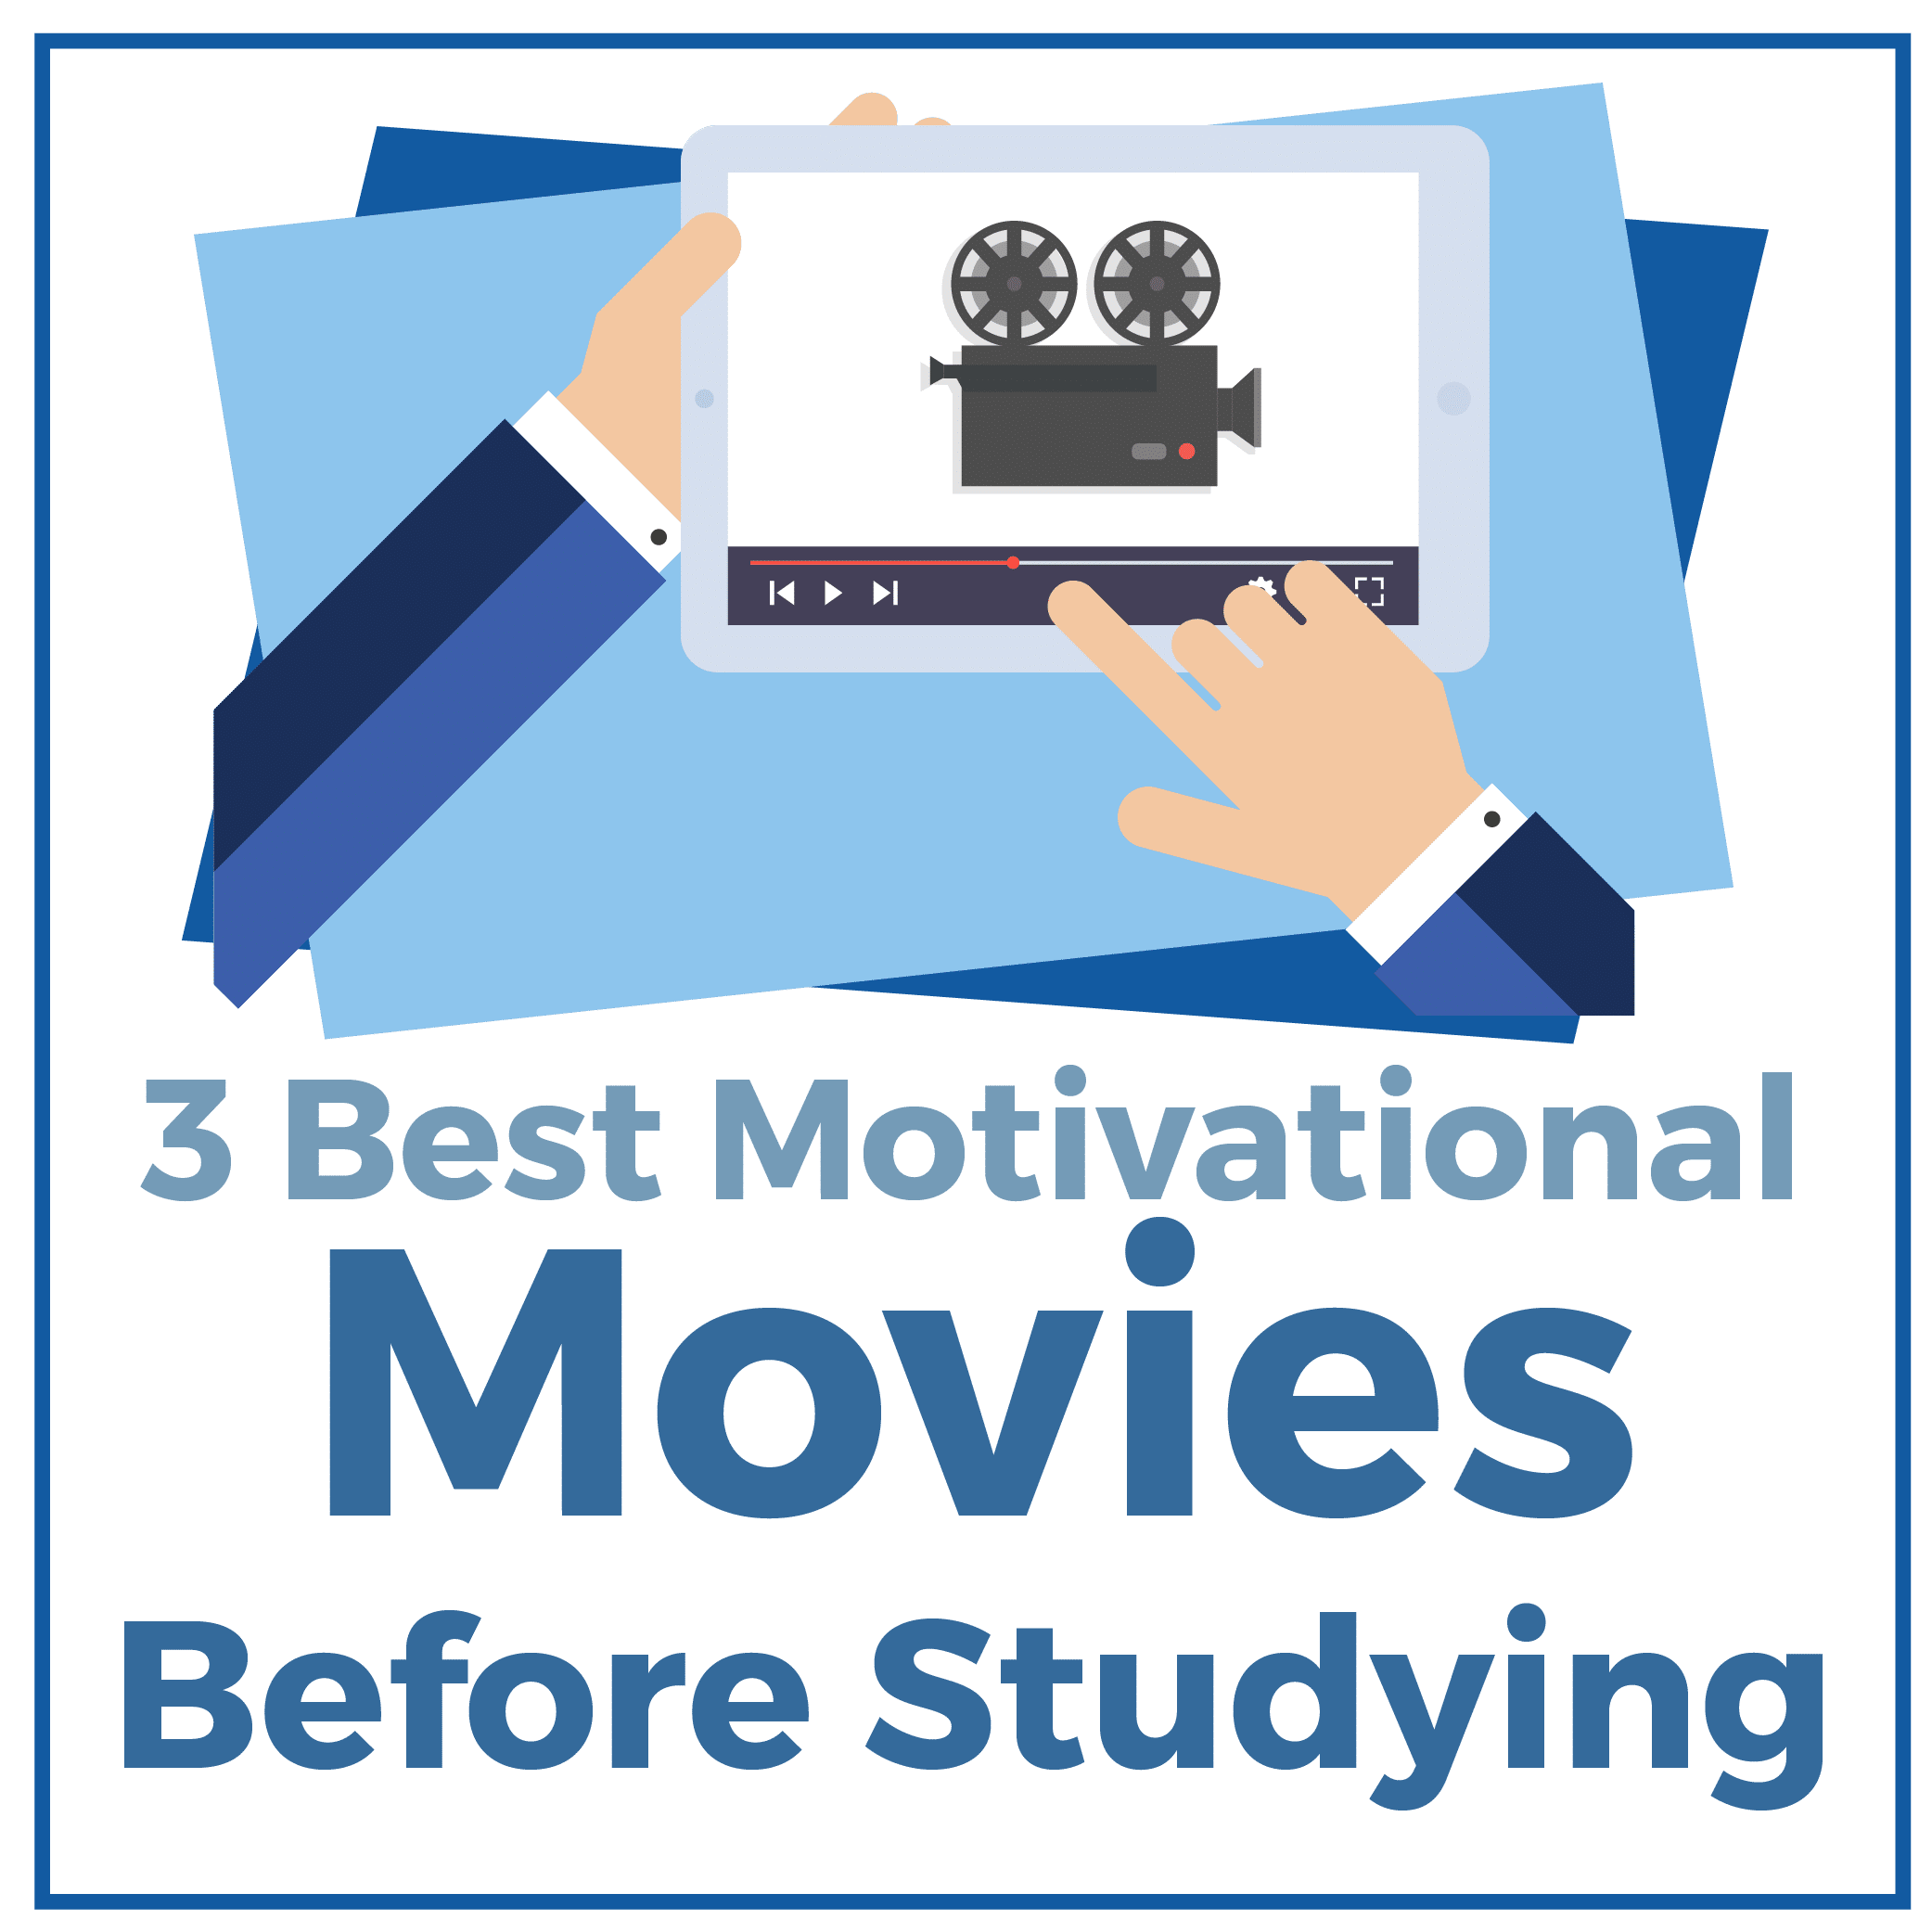 3 Best Motivational Movies Before Studying